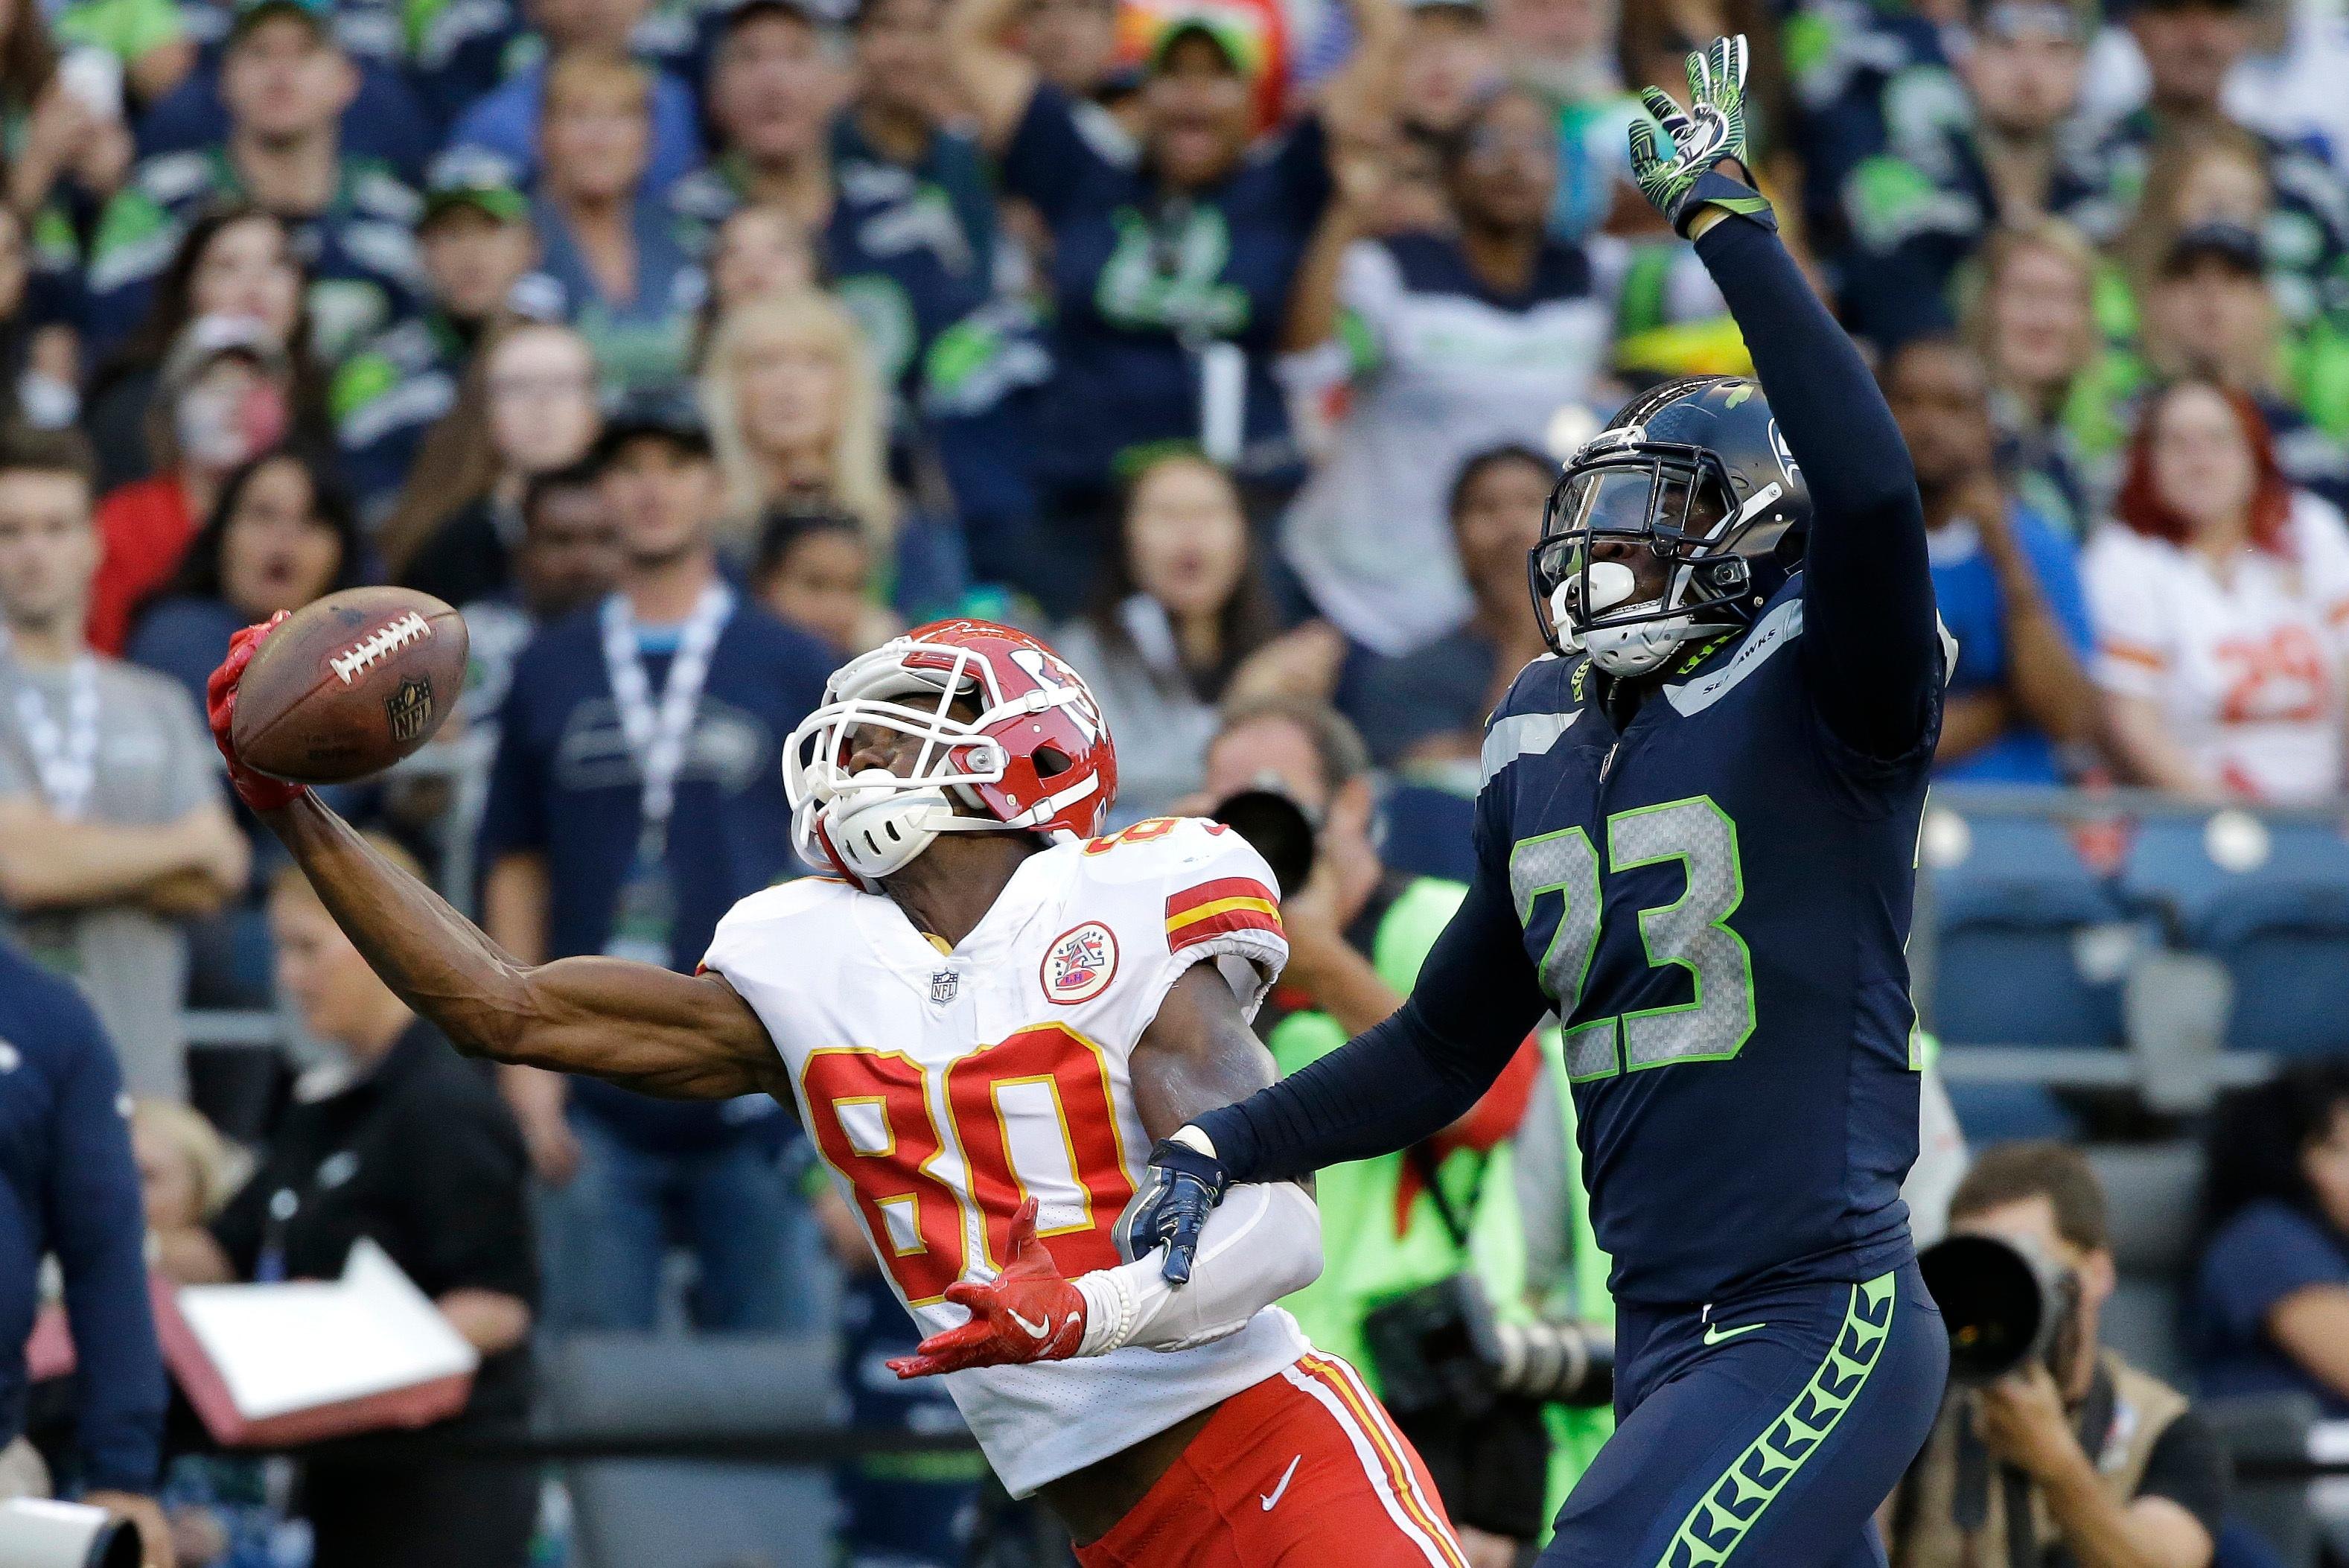 Kansas City Chiefs wide receiver Jehu Chesson (80) is unable to catch a pass as Seattle Seahawks defensive back Neiko Thorpe (23) grabs his arm during the second half of an NFL football preseason game, Friday, Aug. 25, 2017, in Seattle. Thorpe was called for pass interference. (AP Photo/Elaine Thompson)